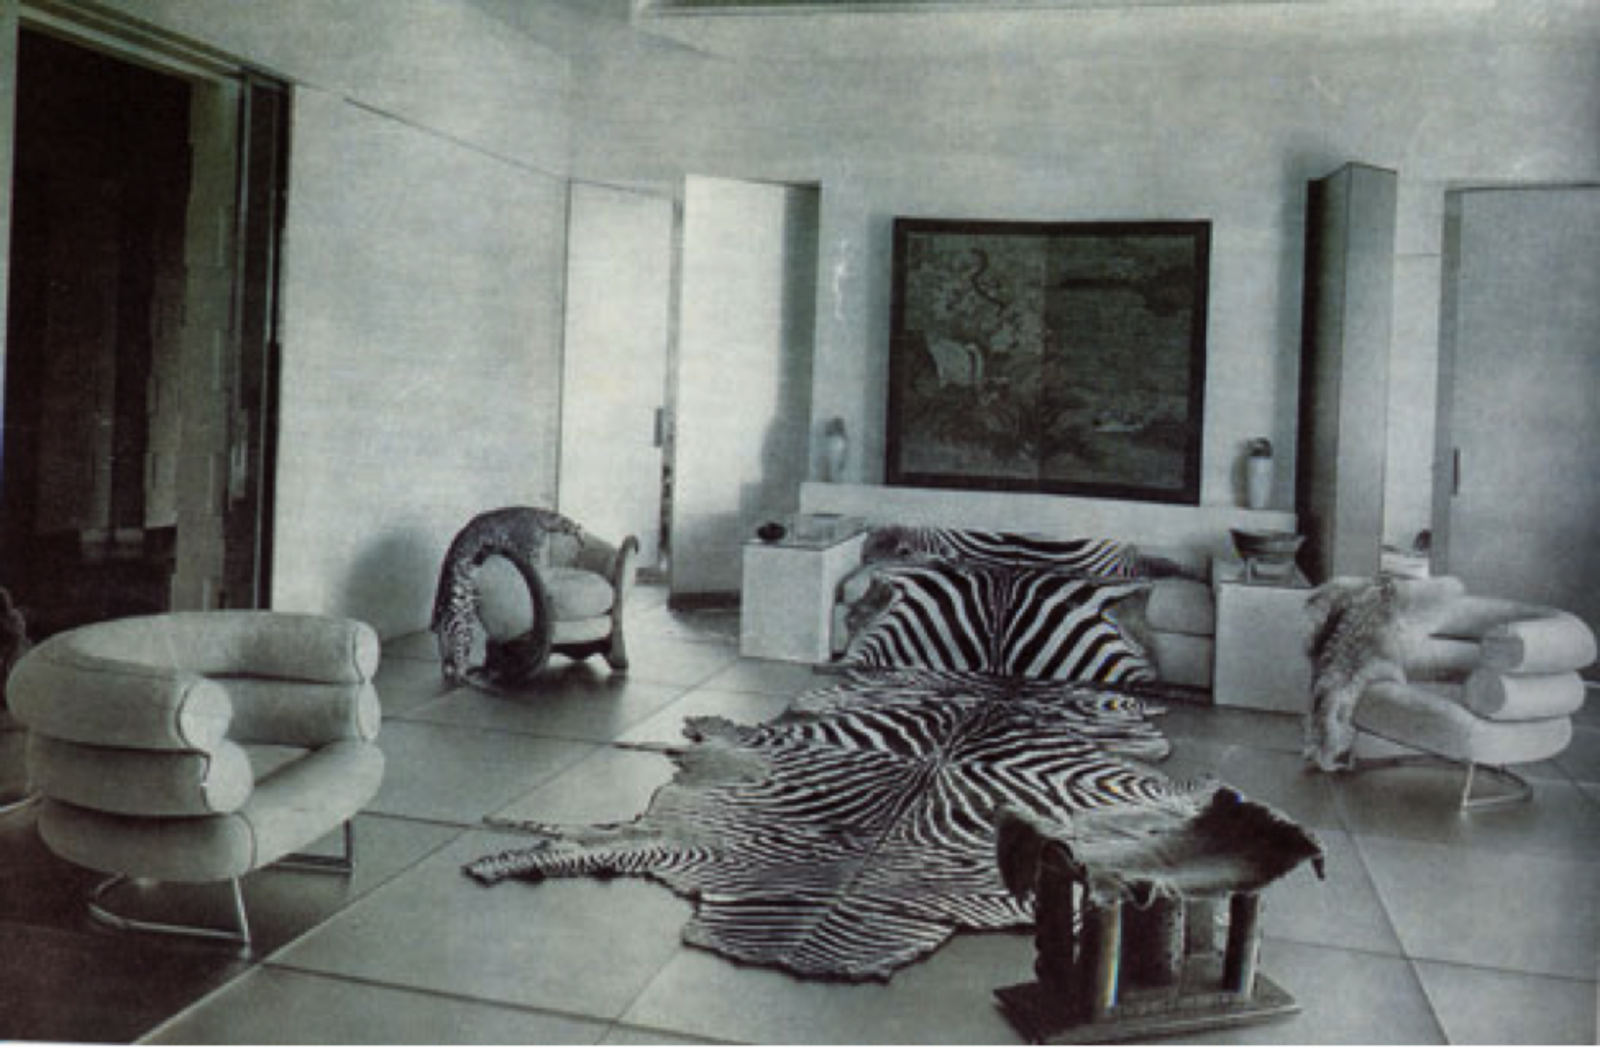 The Rue de Bonaparte apartment, which features the Bibendum chairs along with a collection of striking animal hide blankets and rugs, provides a sense of the modernist atmosphere within which the designer worked. White walls and open spaces, as well as a clear geometricity in the floor tiles and organization of the room, give the apartment a Le Corbusier-like airiness. This tone is complimented by Gray's interest in femininity and comfort, which she incorporates through natural materials and delicate lines, differentiating her from her contemporaries.  Photo 5 of 6 in Design Icon: Eileen Gray